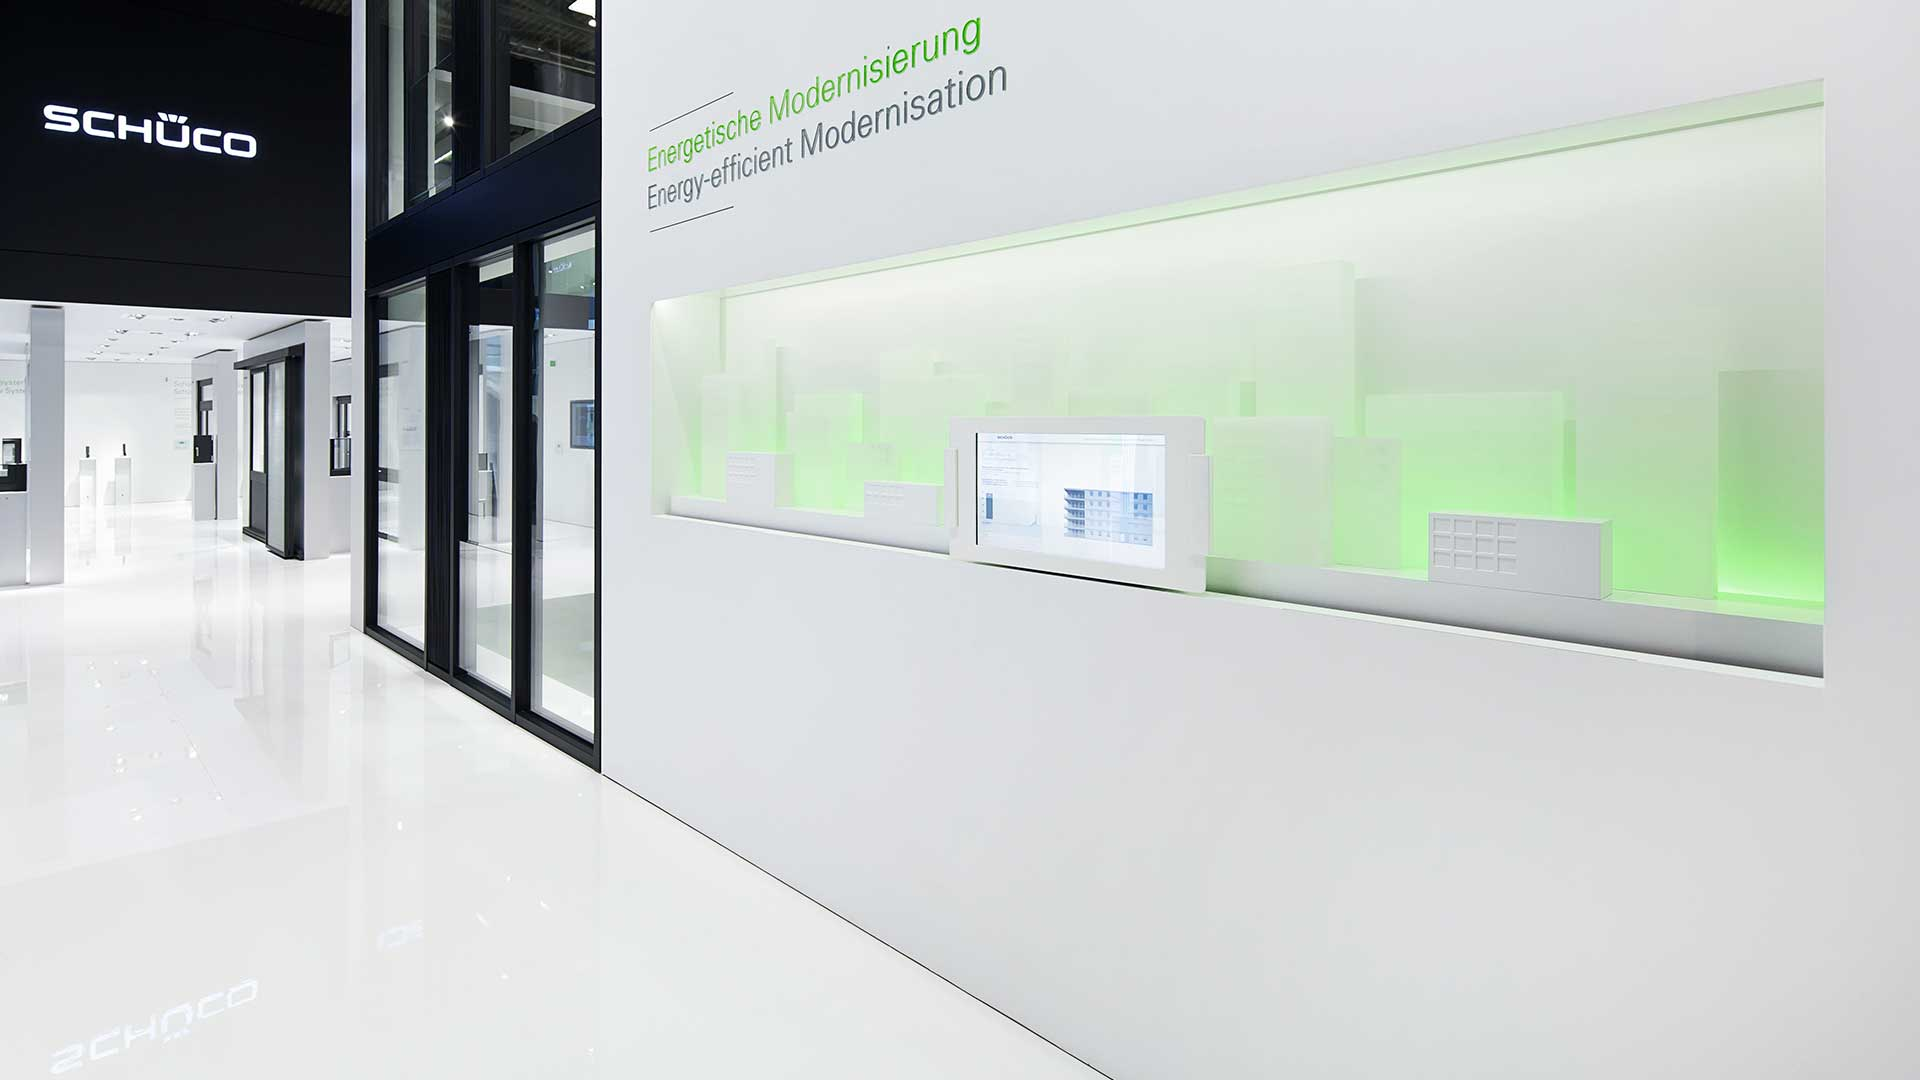 Dart stages the Schüco fair stand at the Bau 2015